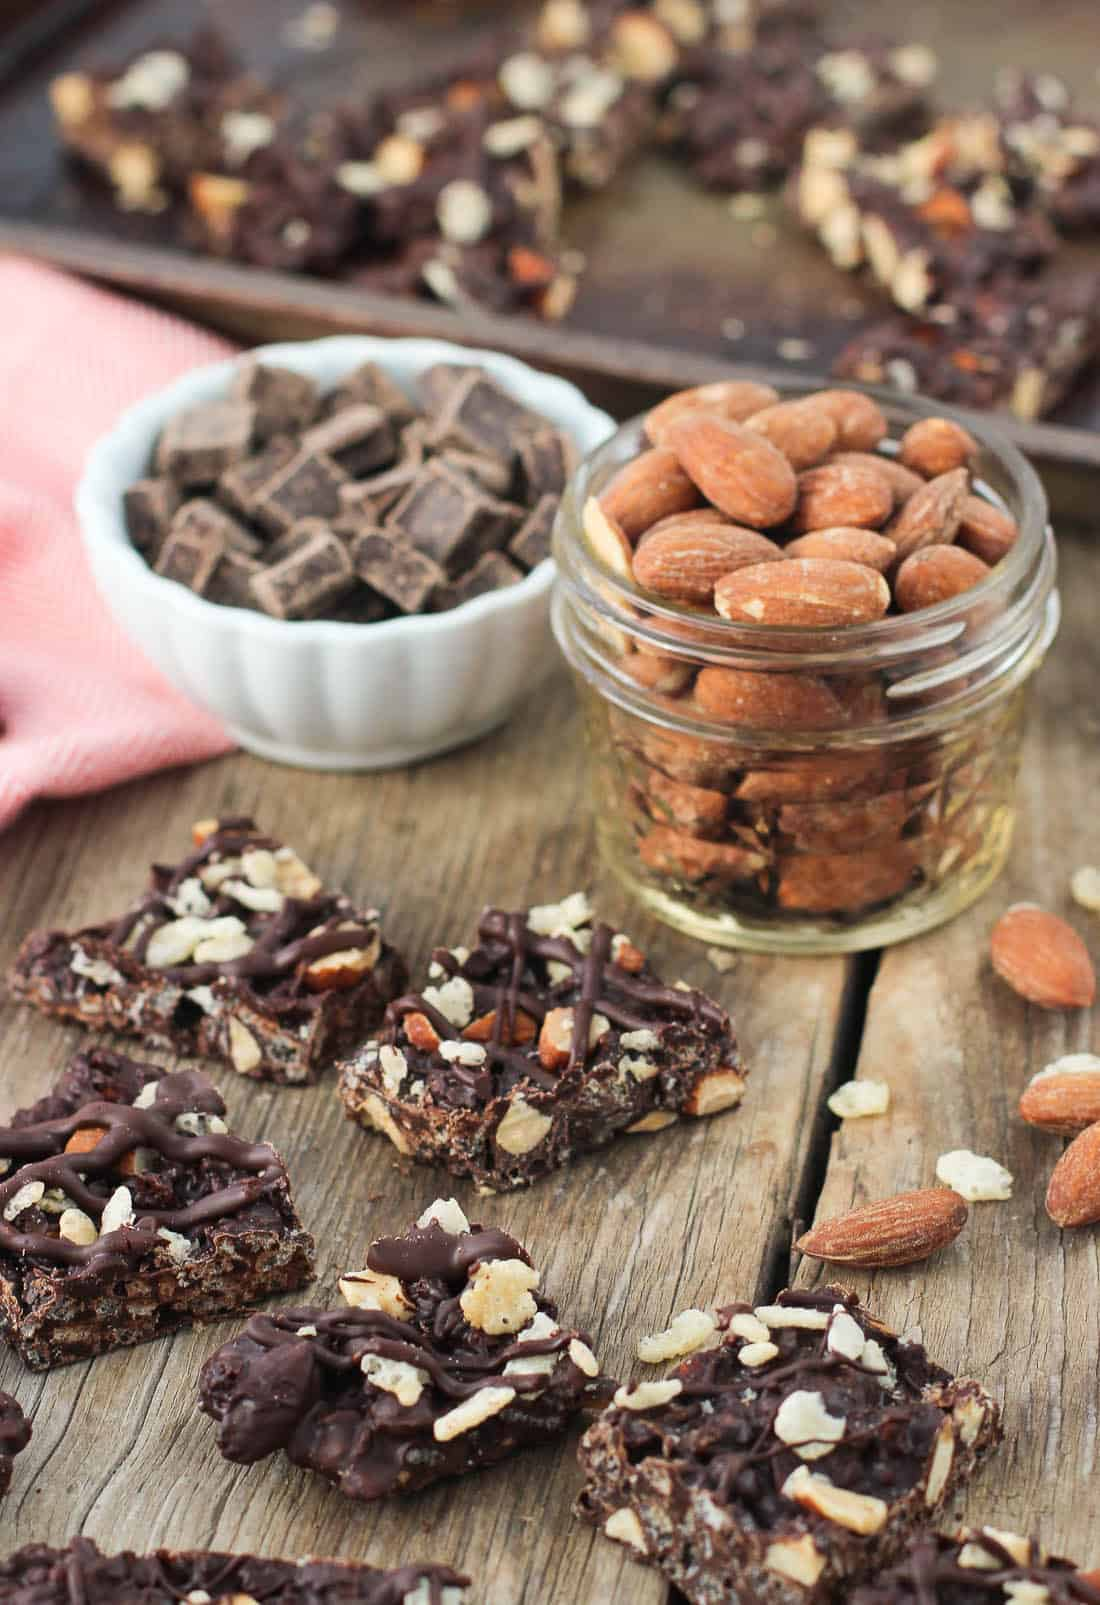 Chocolate bark pieces on a wooden table with jars of chocolate chunks and roasted almonds in the background